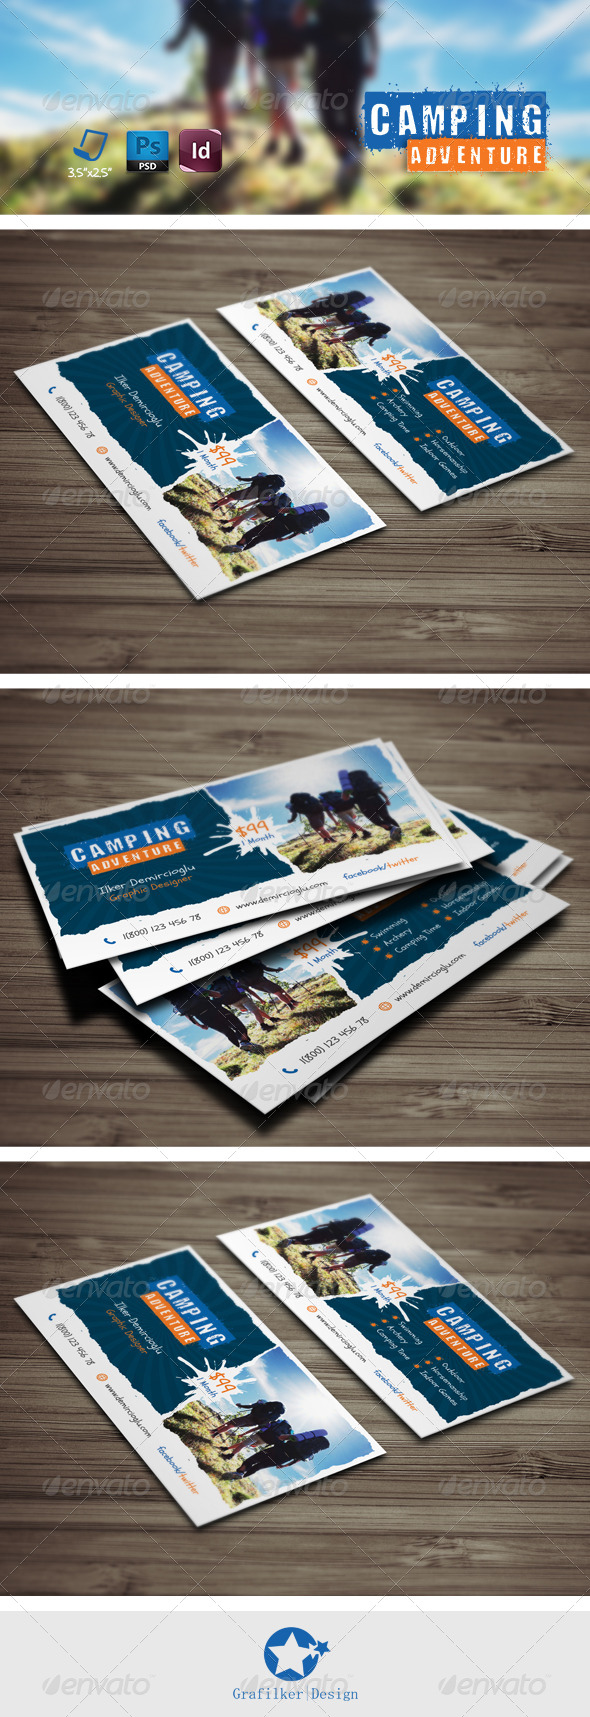 GraphicRiver Camping Adventure Business Card Templates 7878923